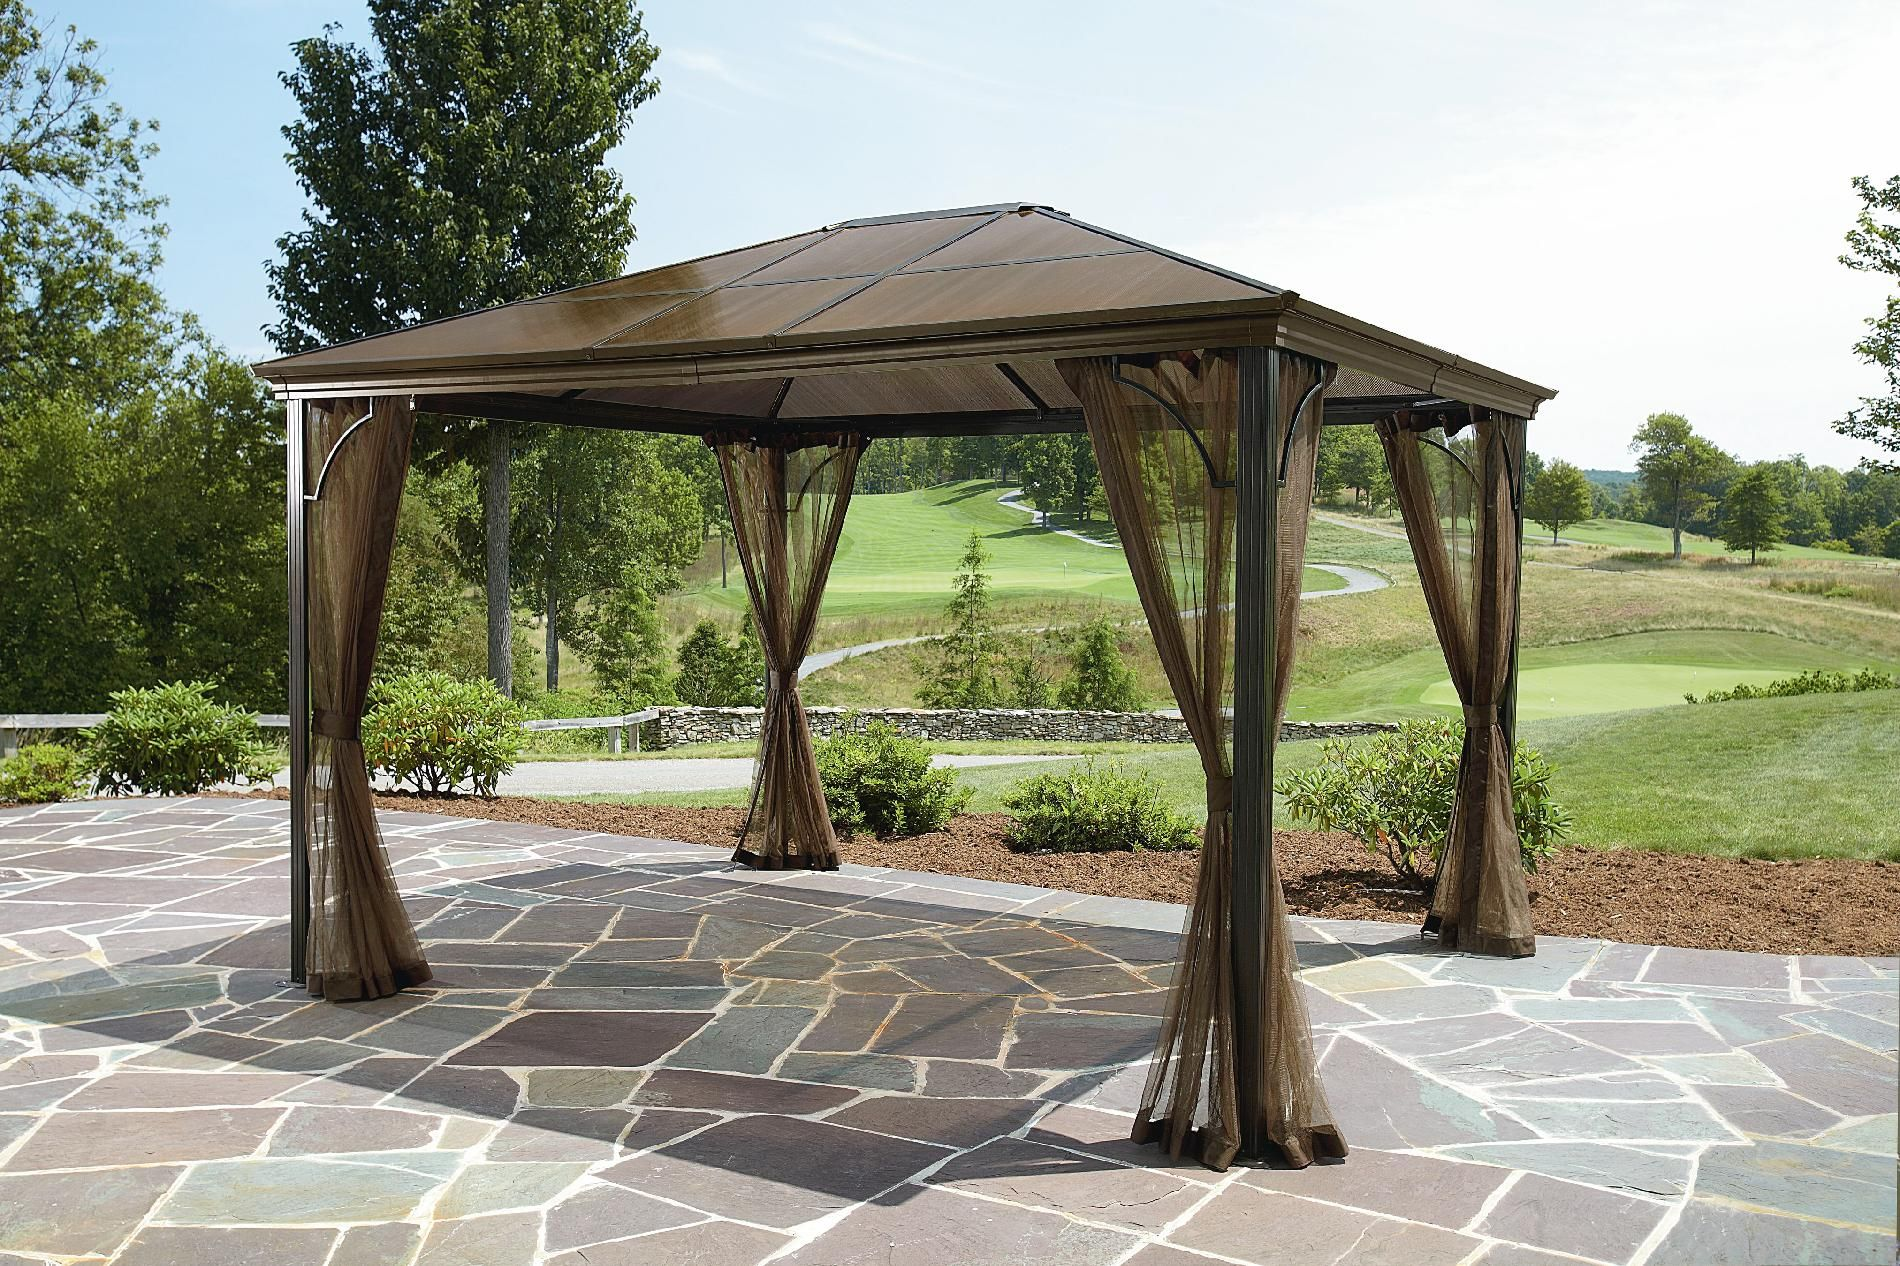 Garden decorations for sale - Gazebo Wedding Ceremony Decor Glamorous Function Wedding Ceremony Decorations For Sale